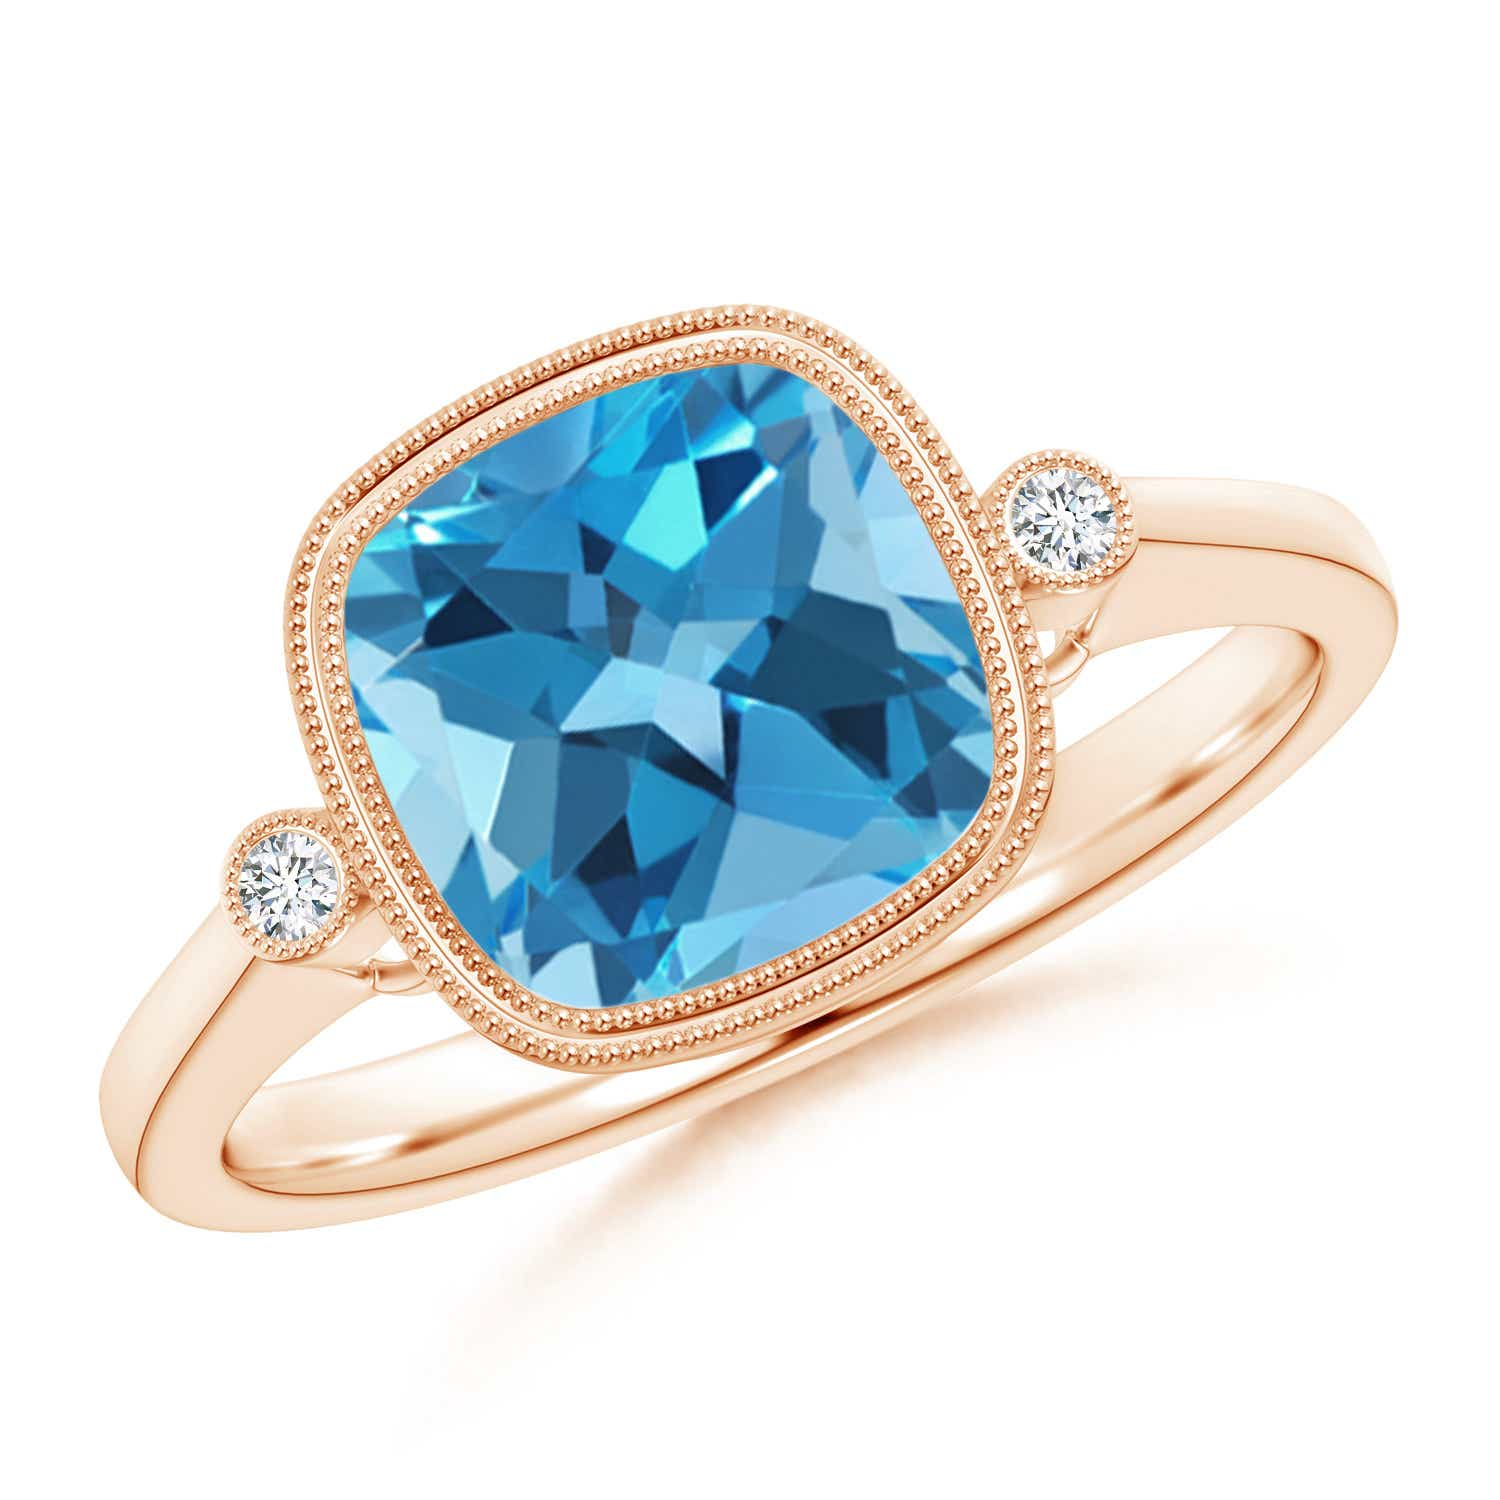 Angara Round Swiss Blue Topaz Solitaire Ring with Milgrain Detailing POM6o